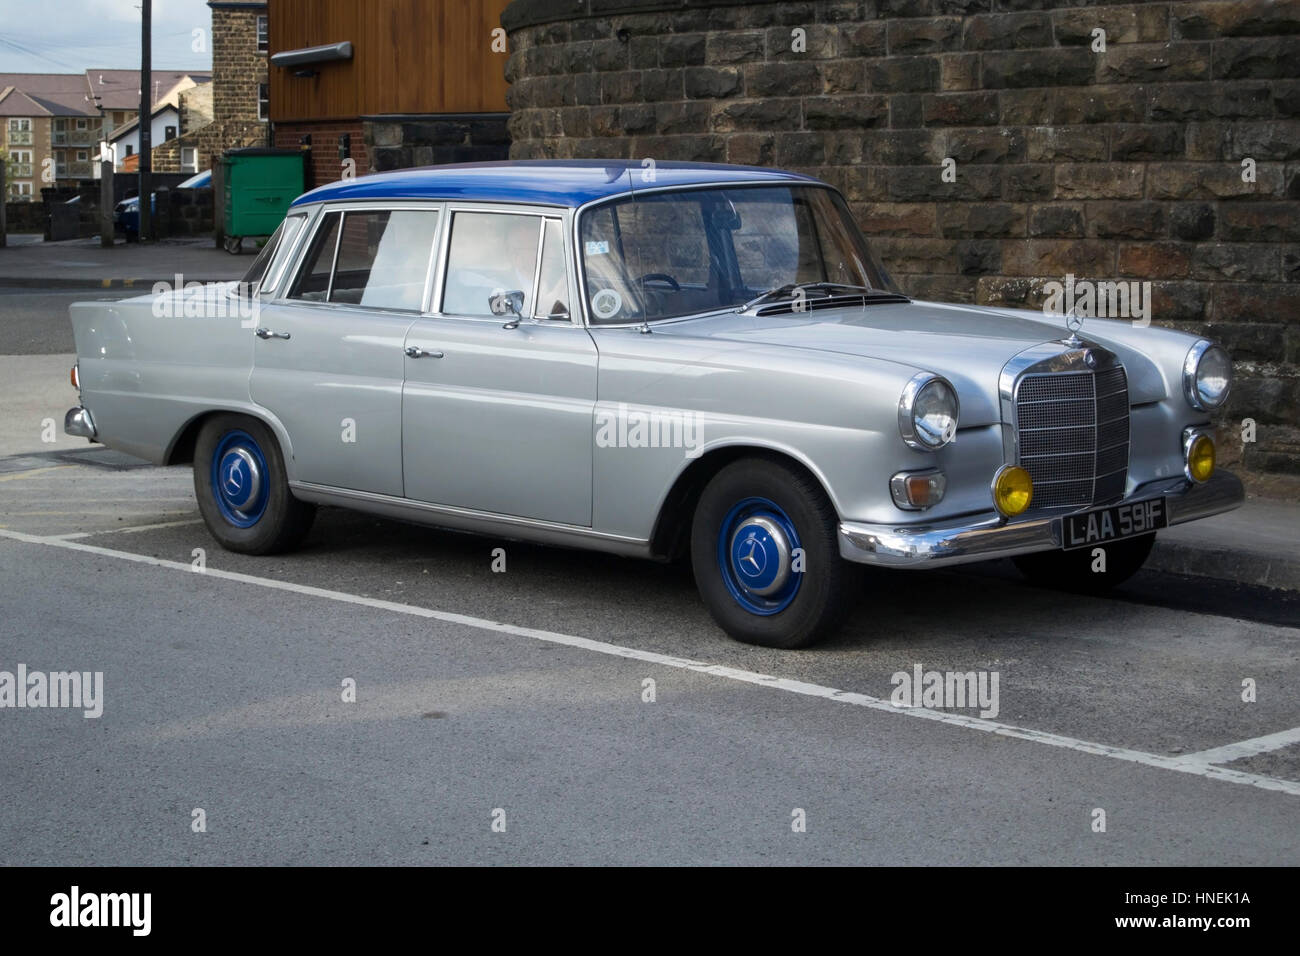 1967 Silver And Blue Mercedes Benz Series 123 Saloon Car   Stock Image